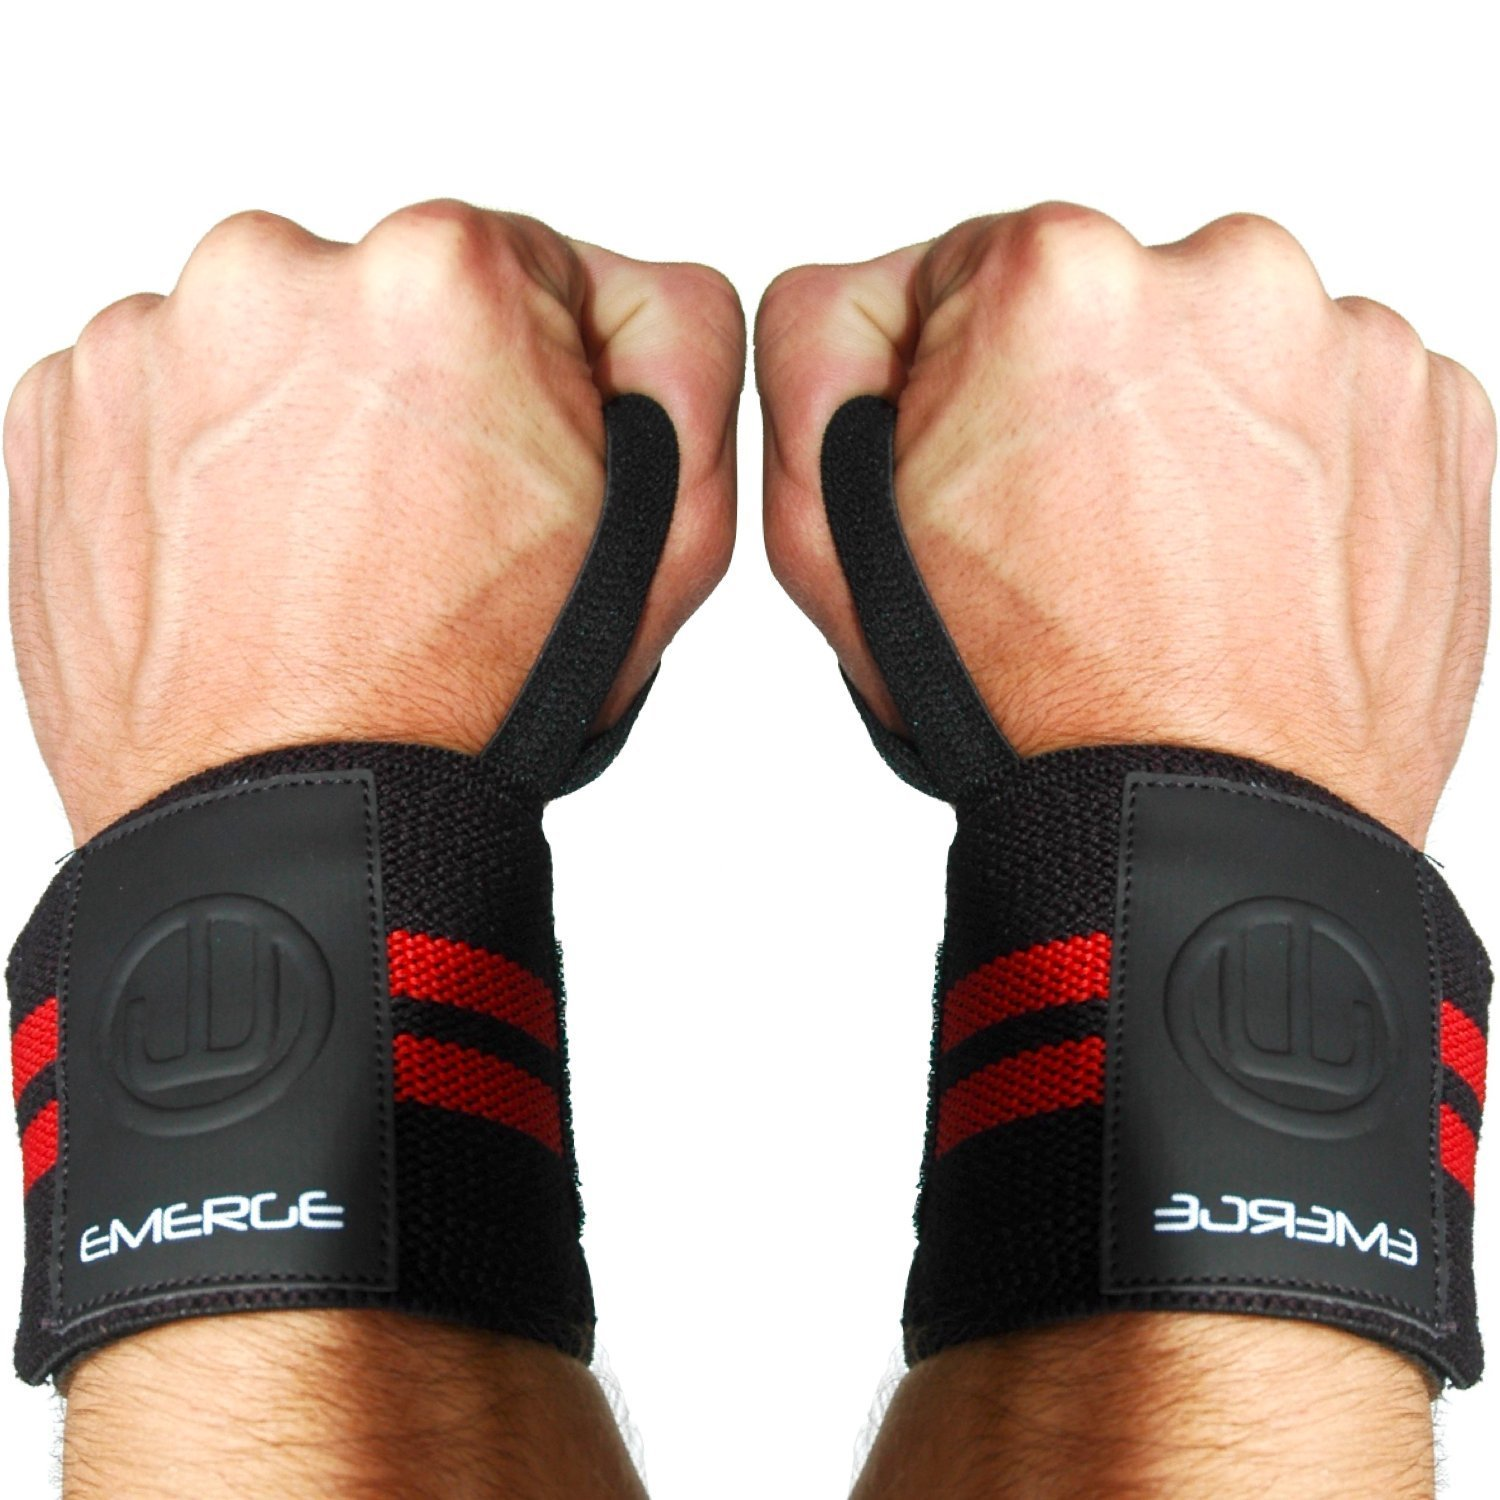 Lifting Wrist Wraps by Emerge